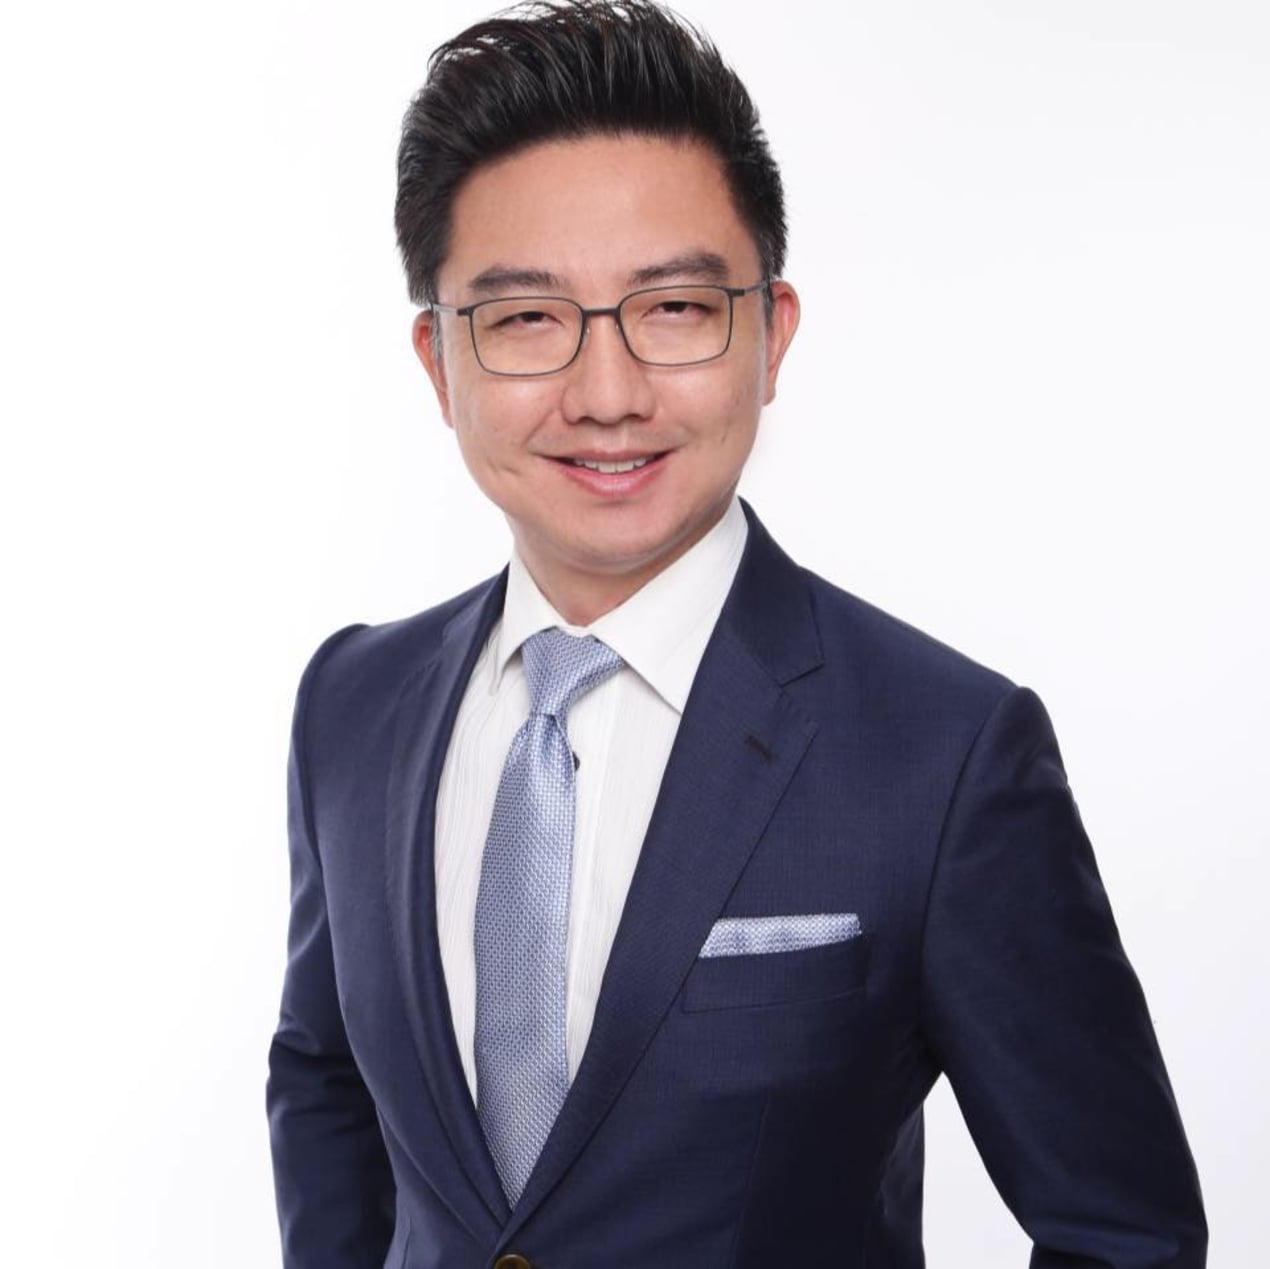 Ask Dr Julian Tan: Heart Disease